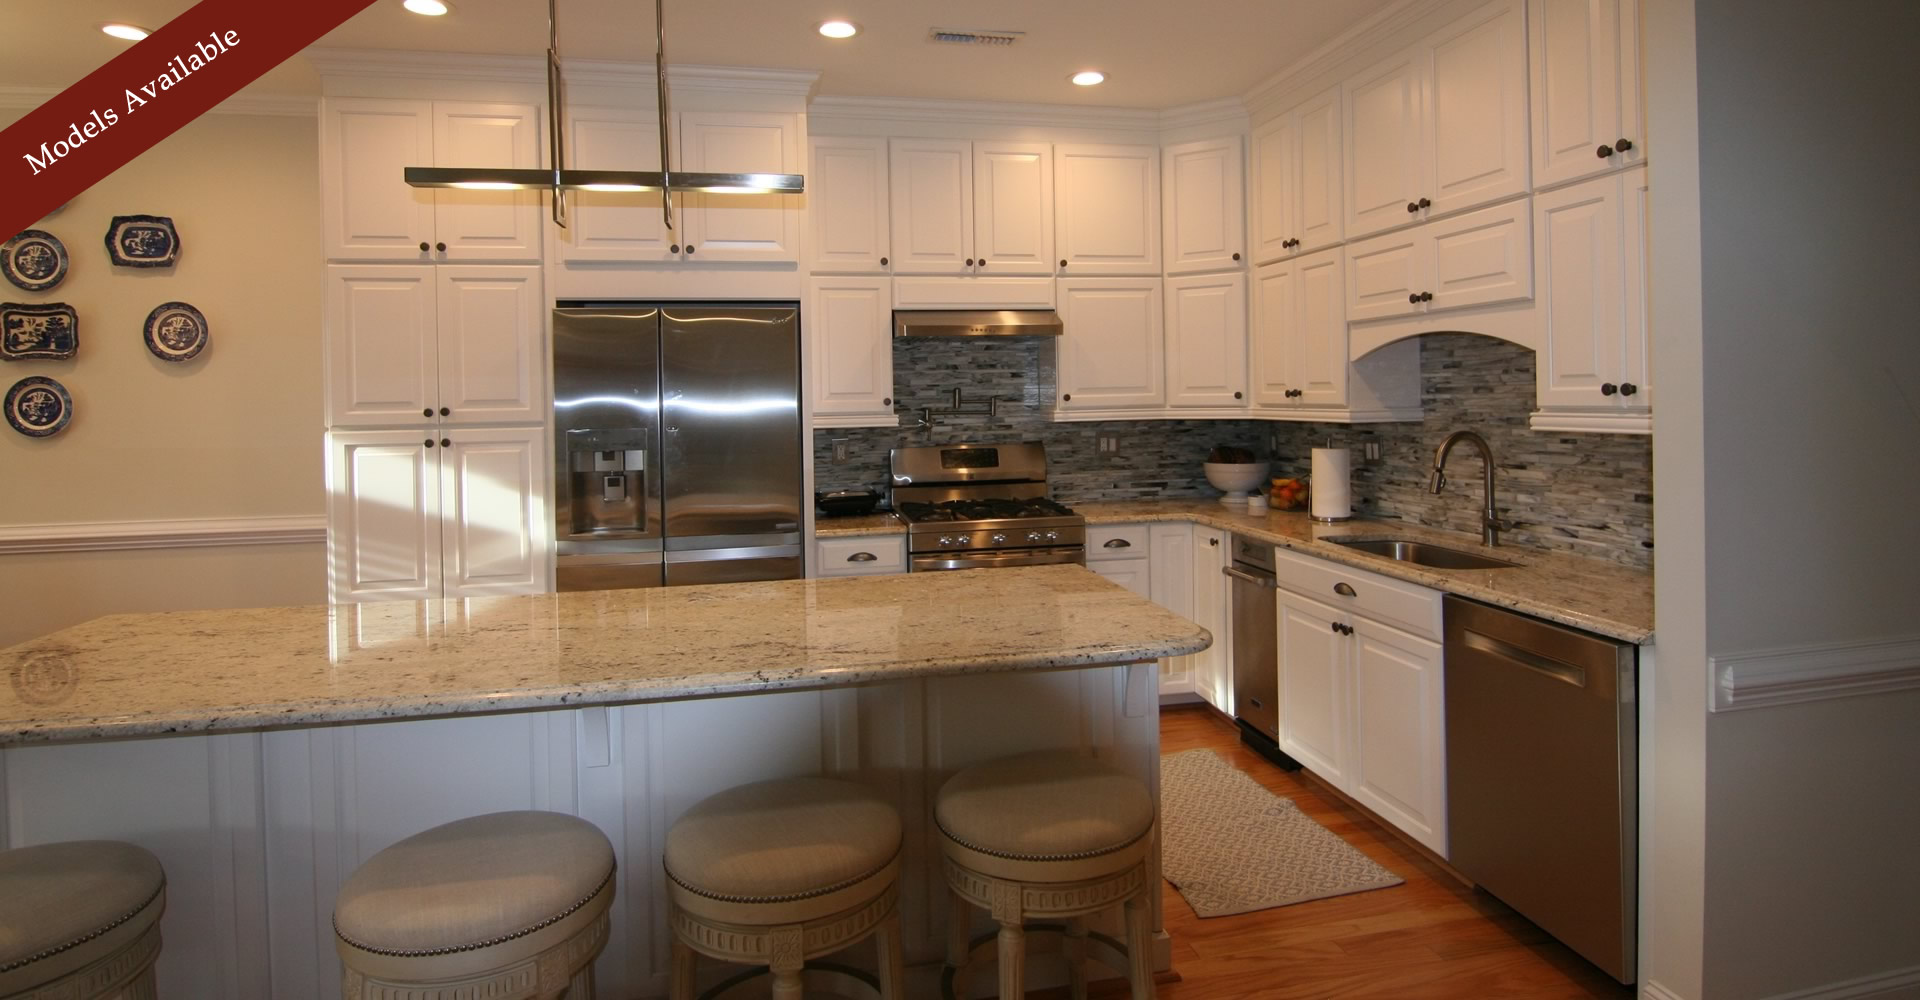 Large kitchen with wine cooler, granite countertop, island.